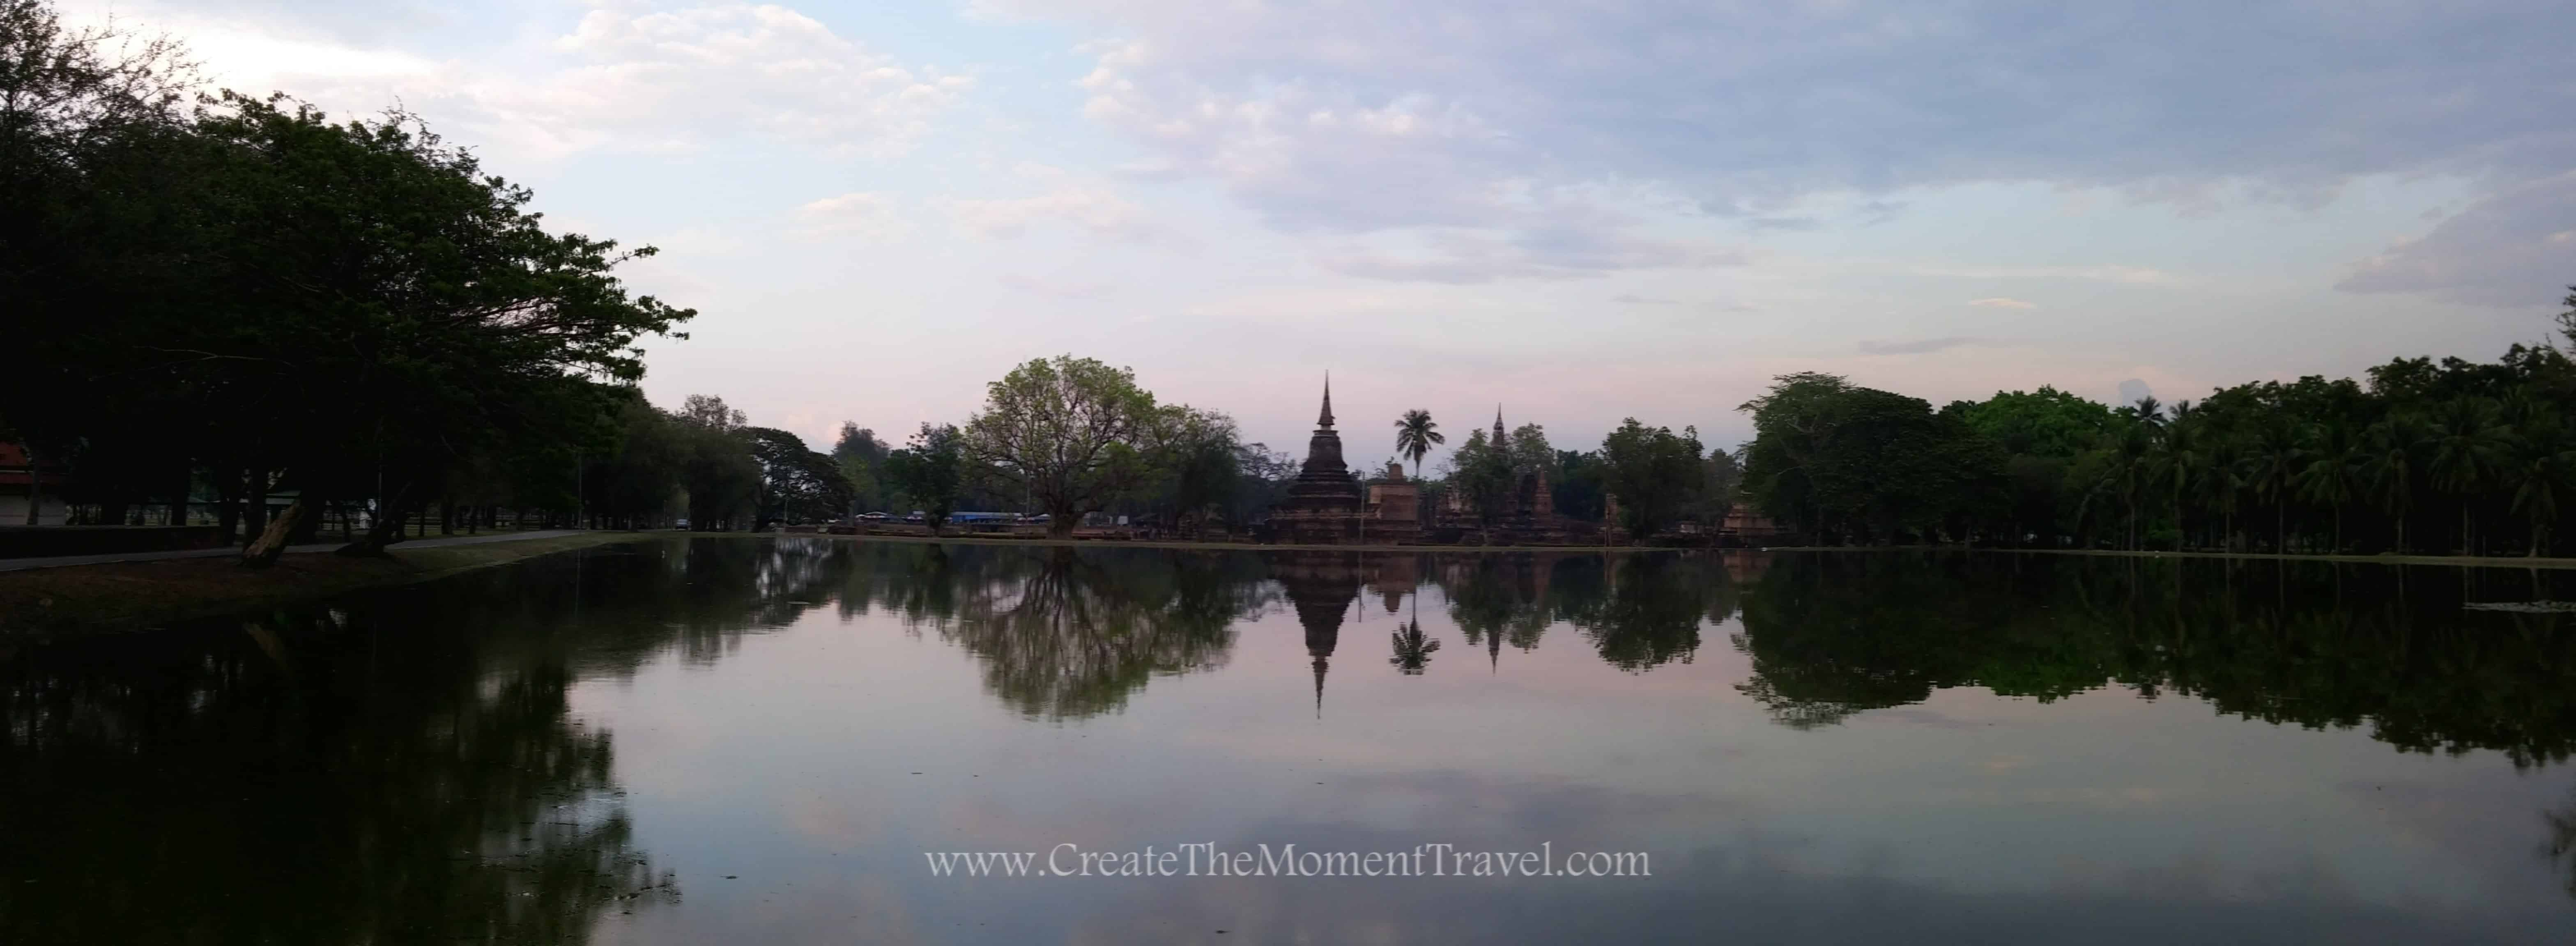 Sukhothai Thailand The Historical City by Create The Moment Travel